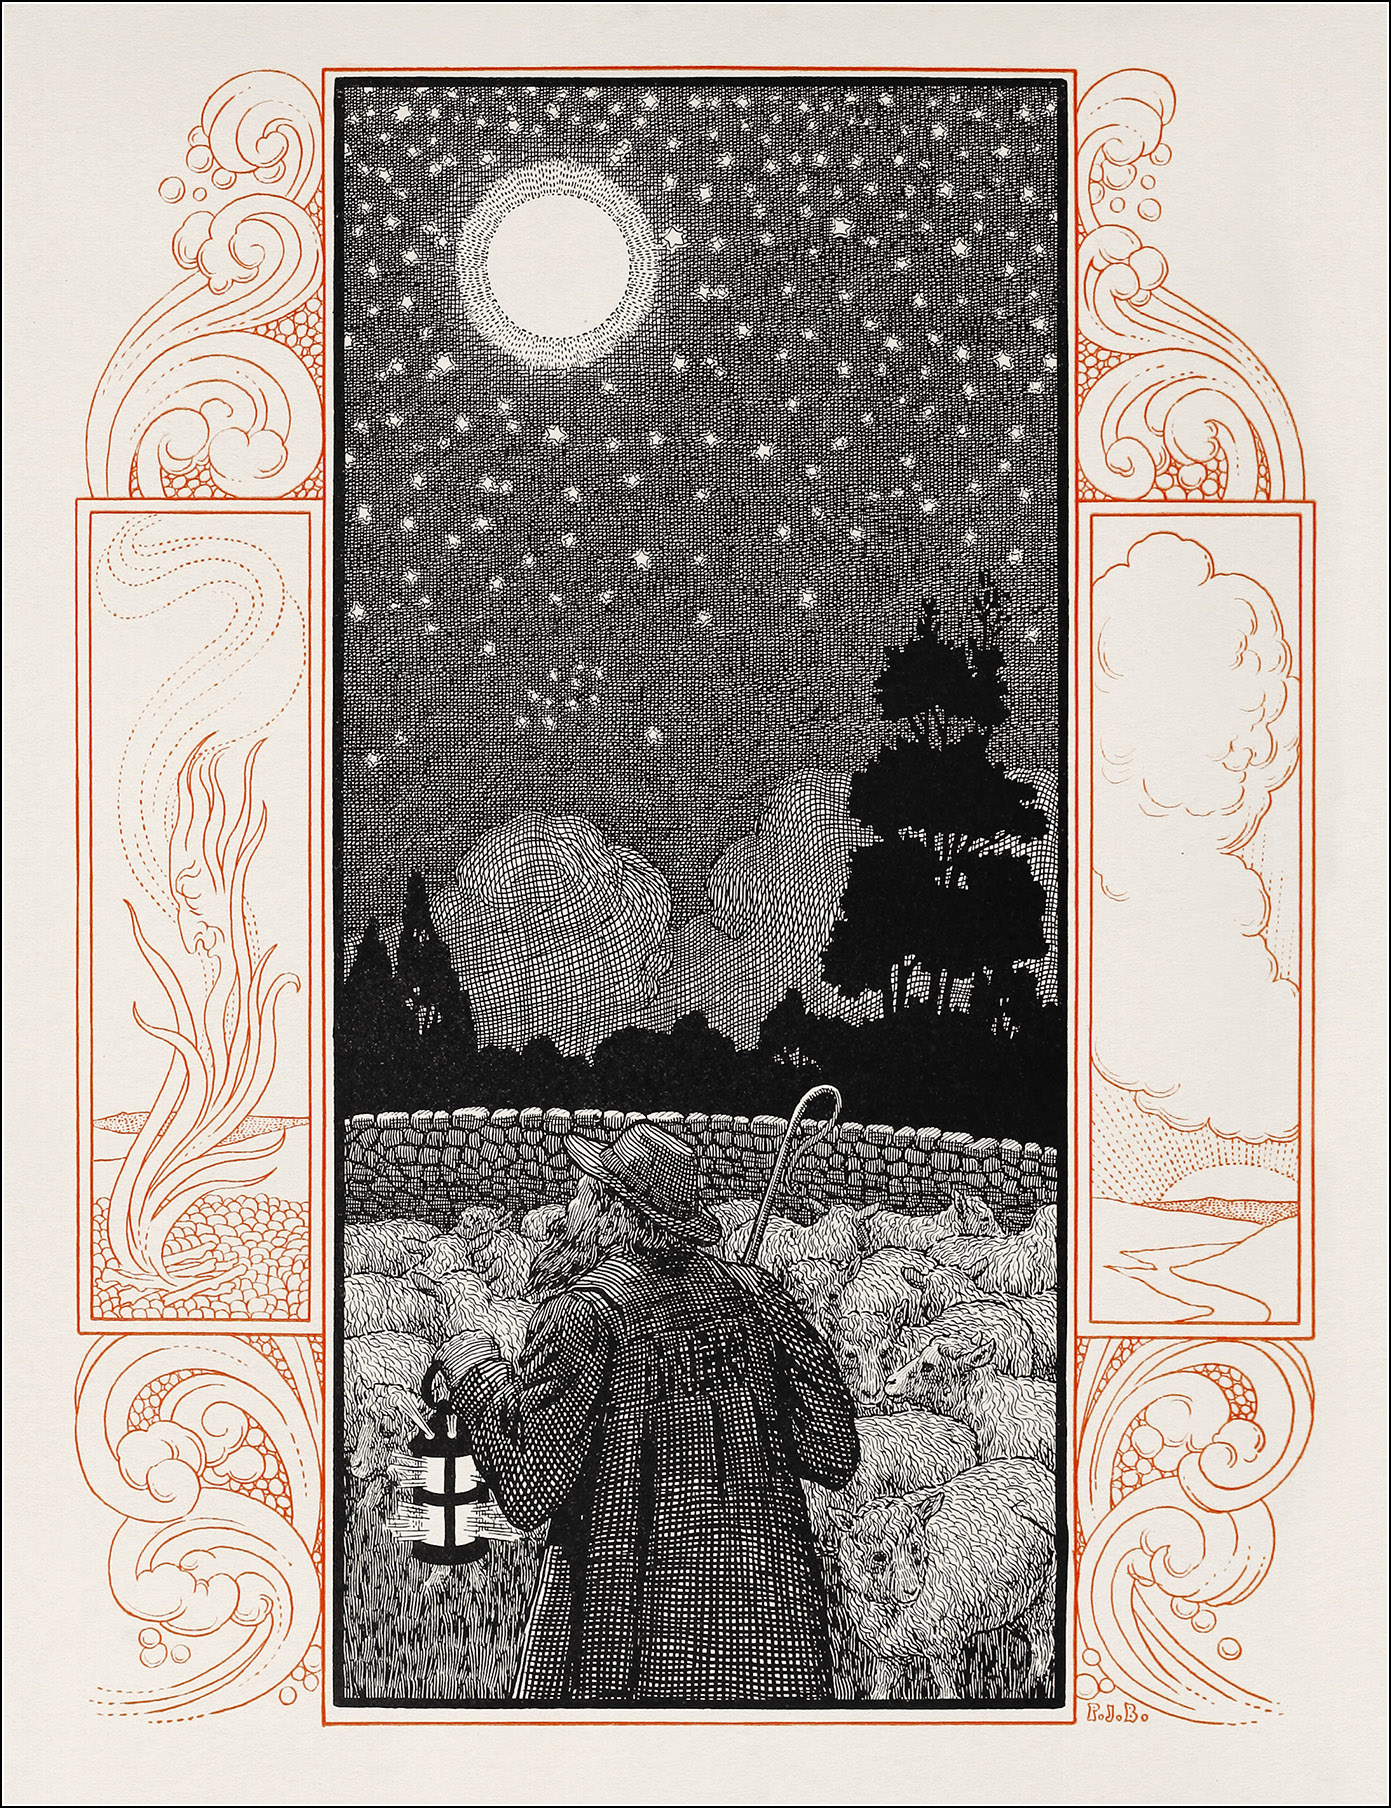 P.J. Billinghurst, Tales told at twilight by Katherine M. Iliffe 4